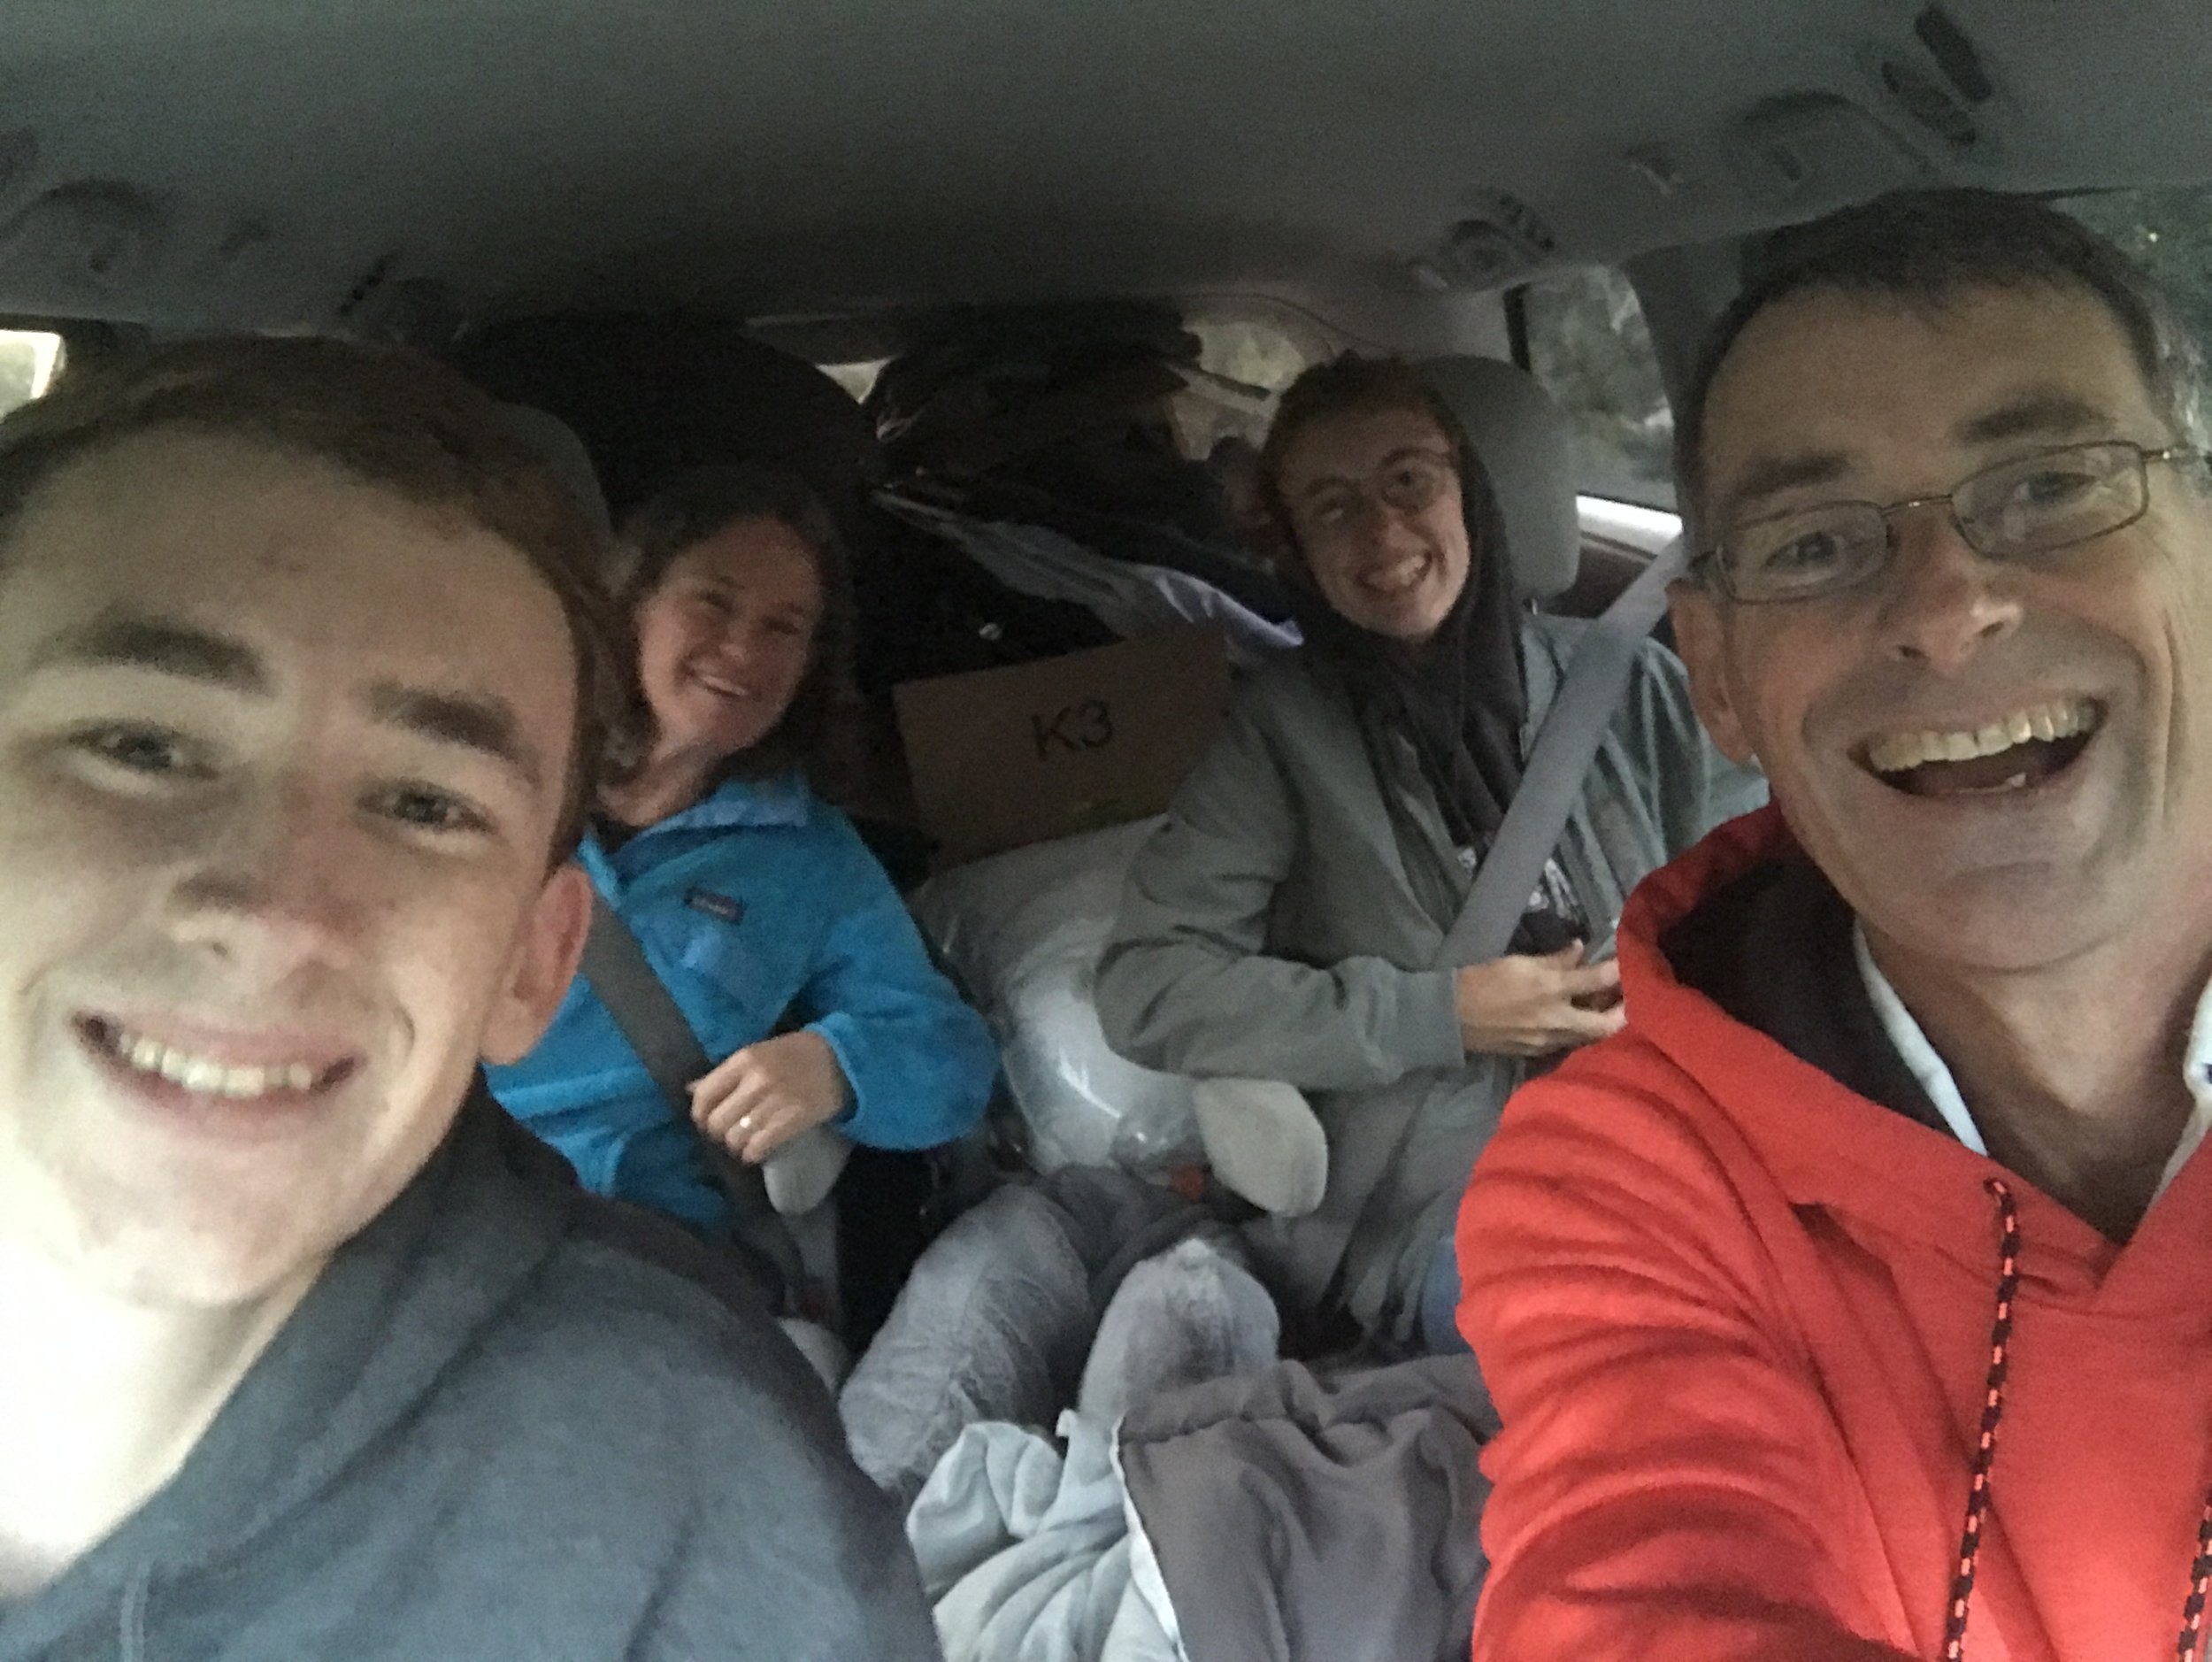 Car loaded for college drop-off.